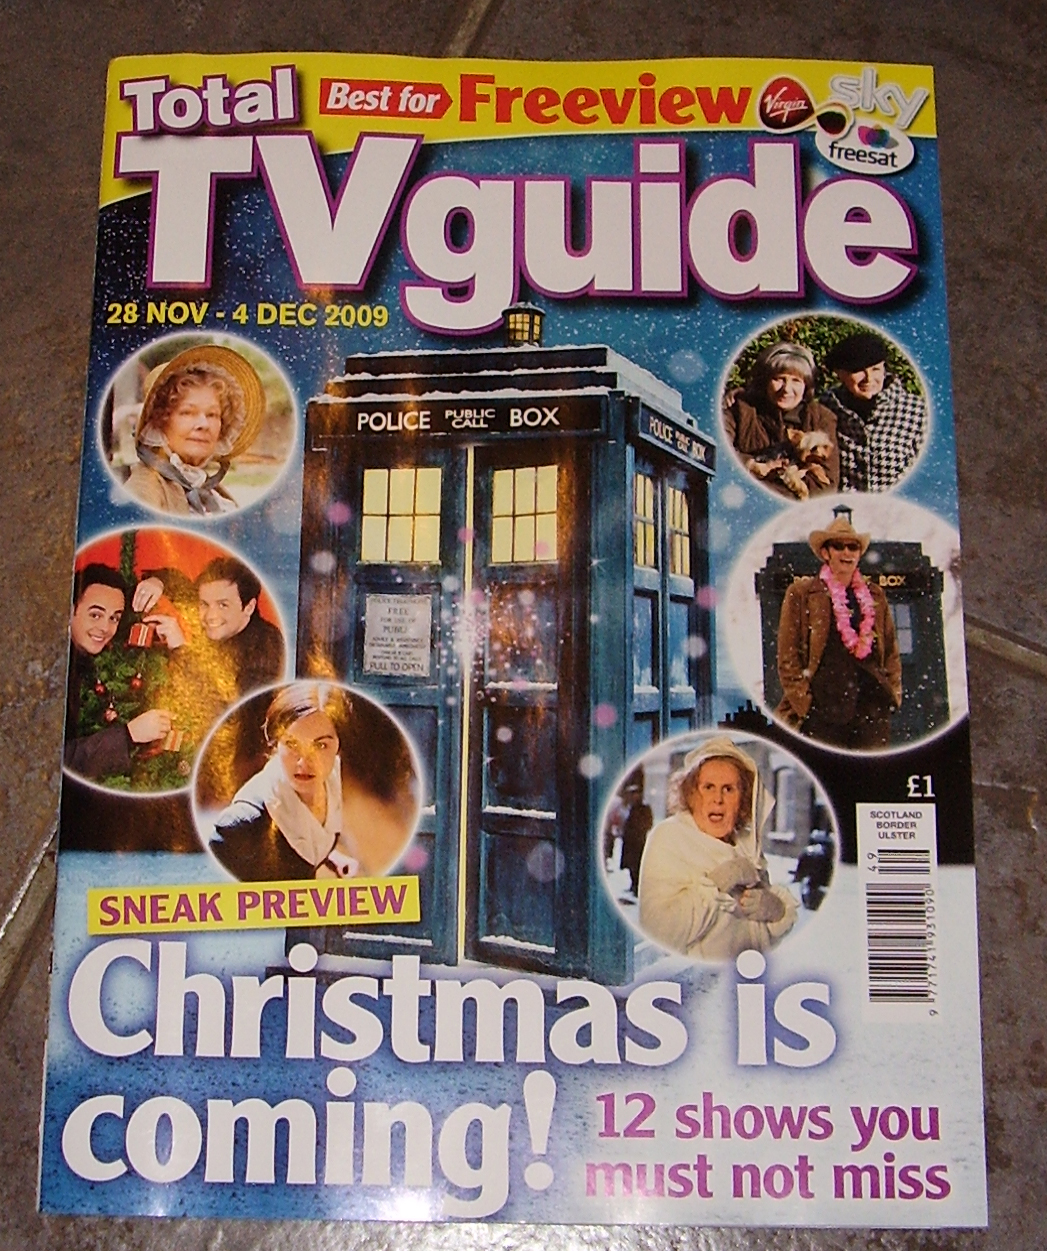 Total TV Guide 28 nov - 4 dec